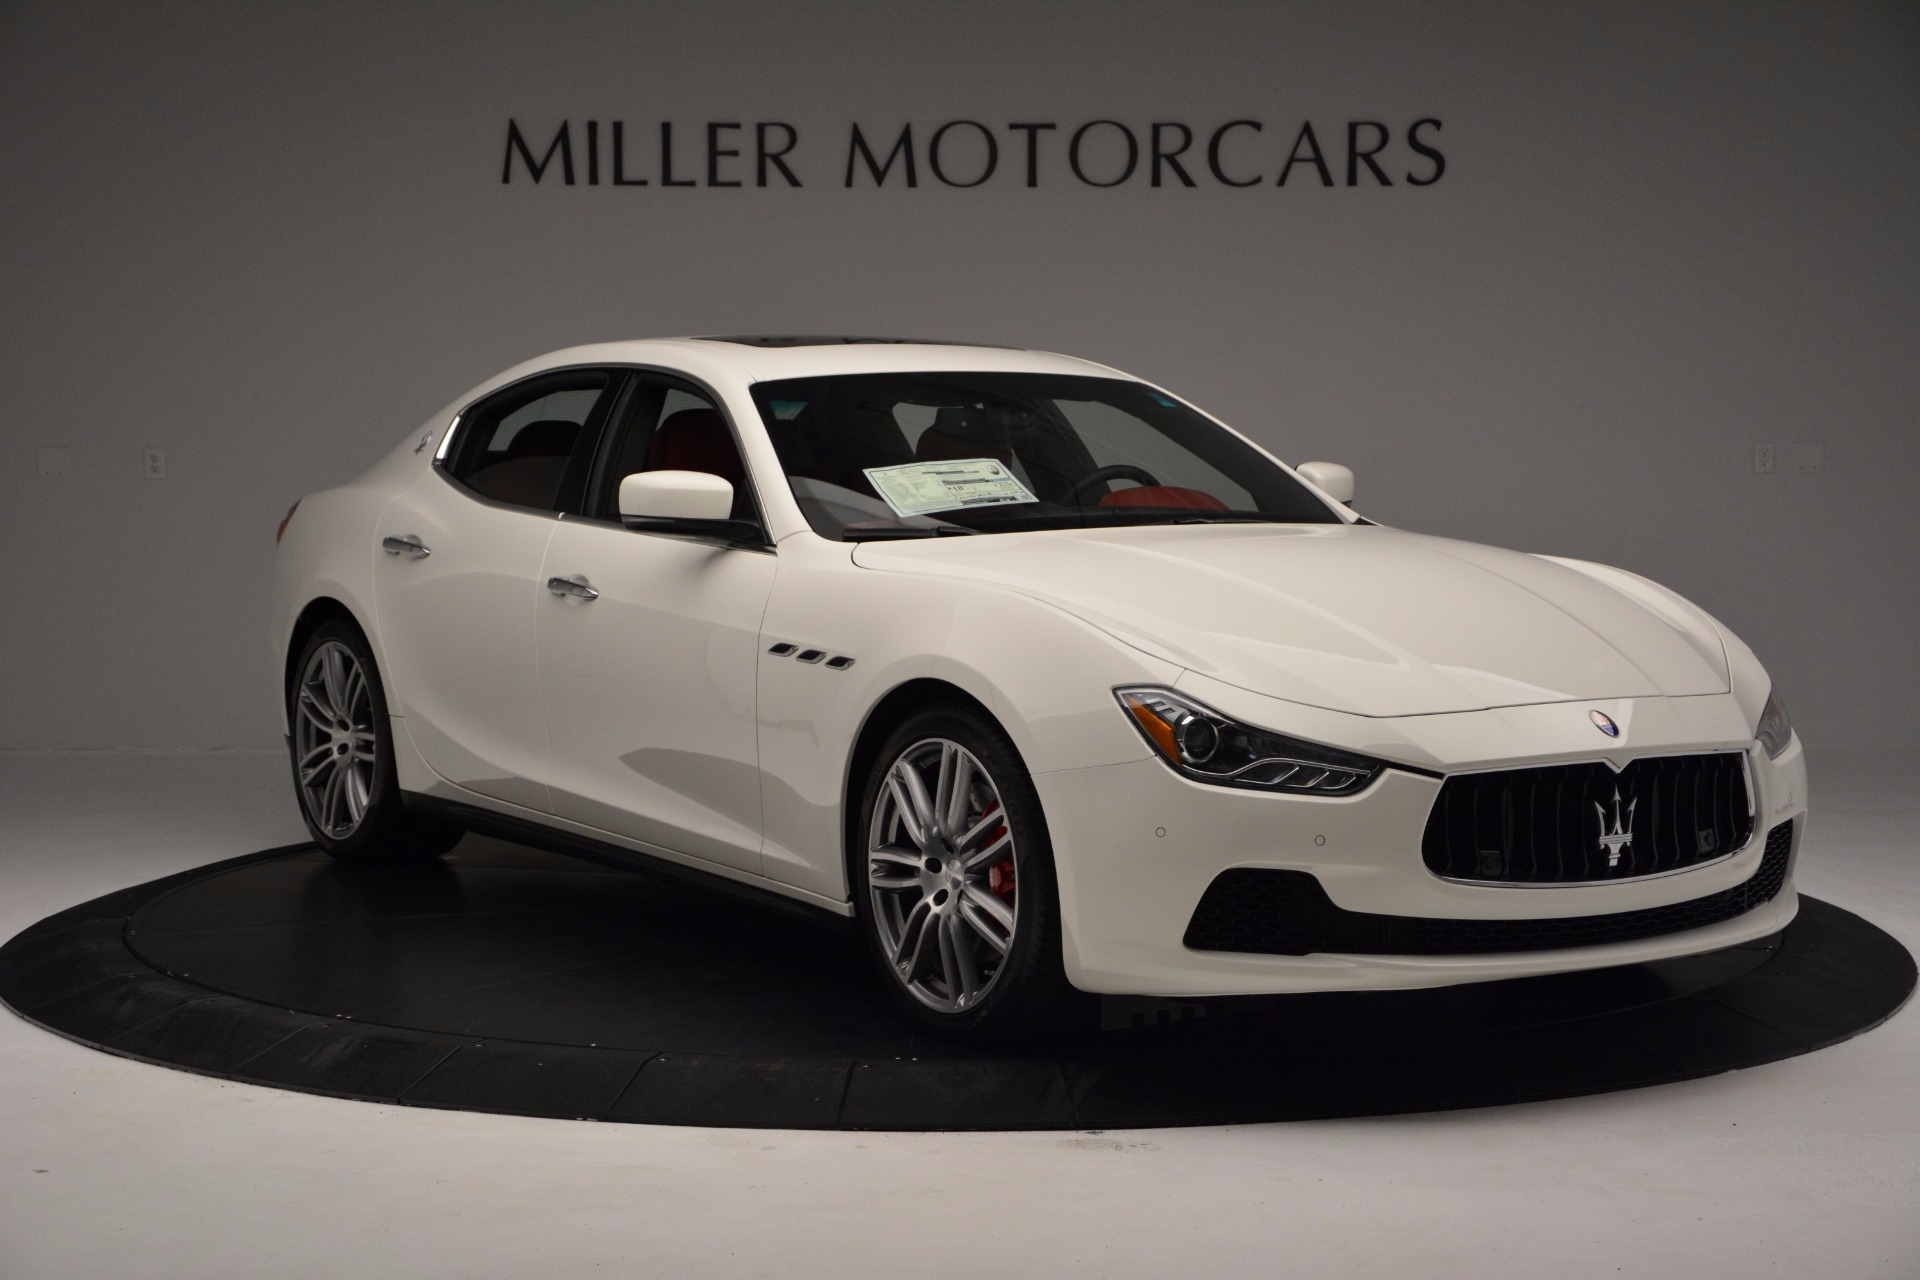 New 2017 Maserati Ghibli S Q4 For Sale In Greenwich, CT 1111_p11